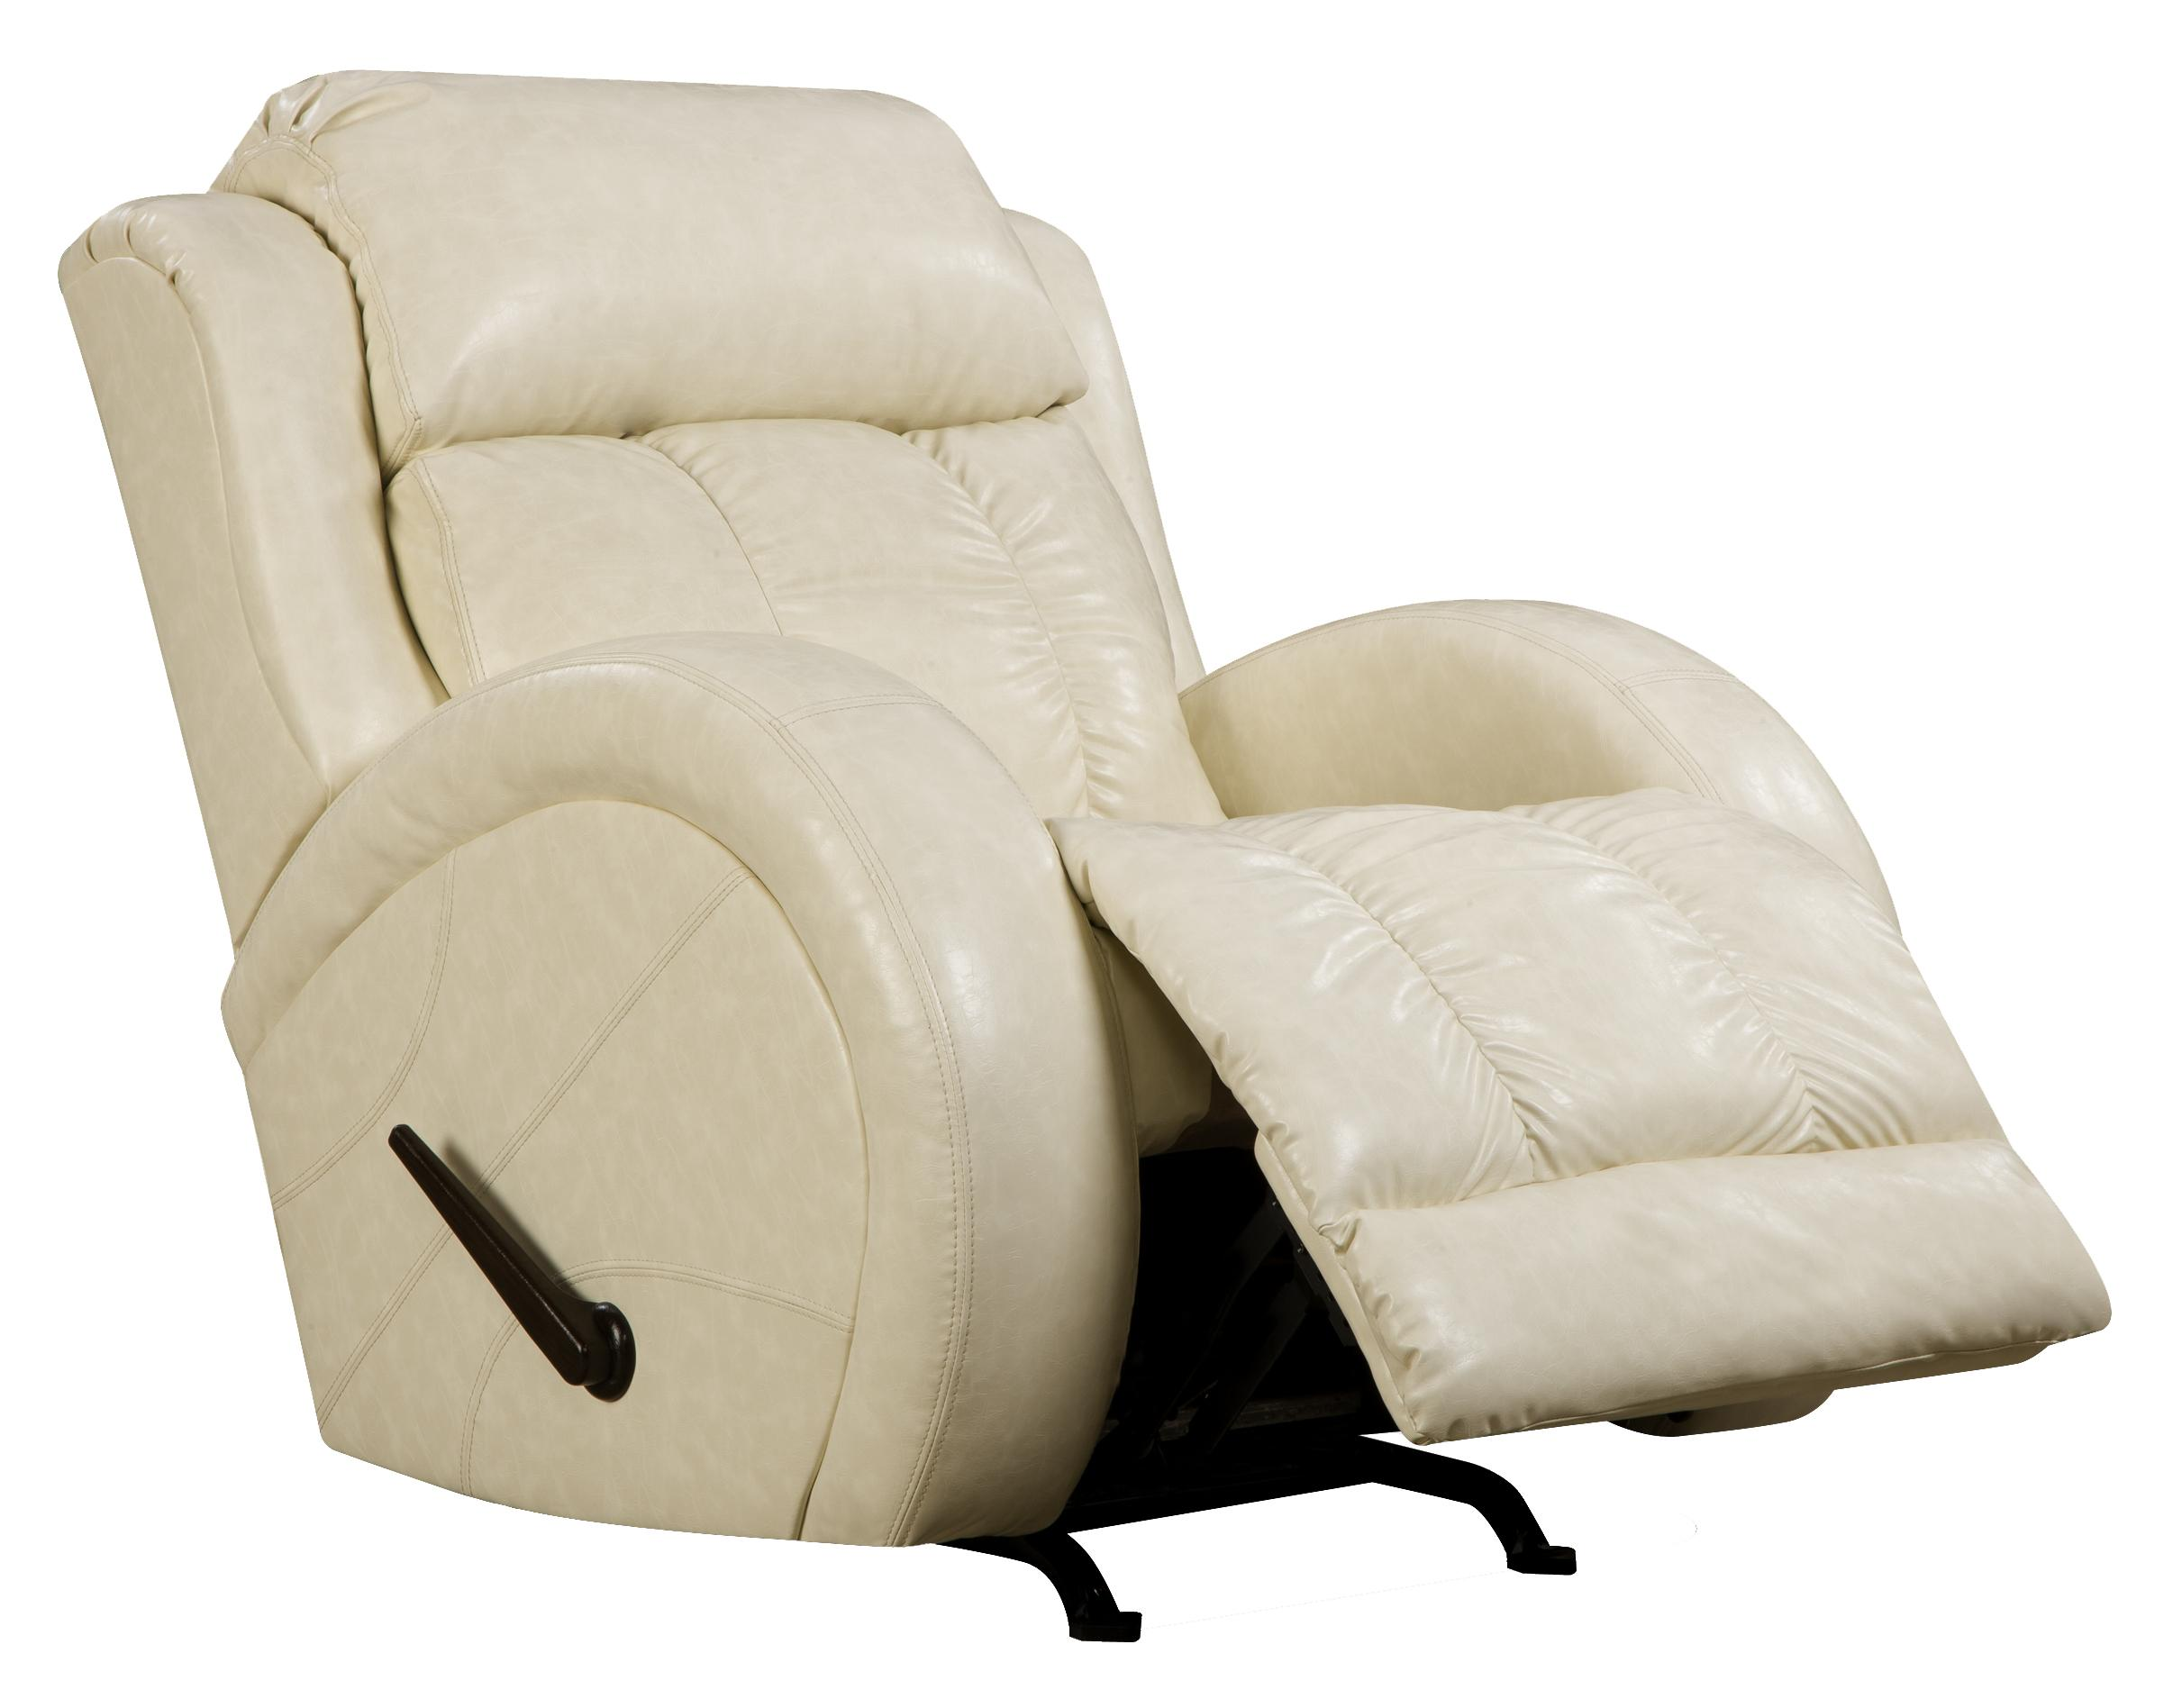 Swivel rocker recliner with sport style by southern motion wolf and gardiner wolf furniture - Stylish rocker recliner ...